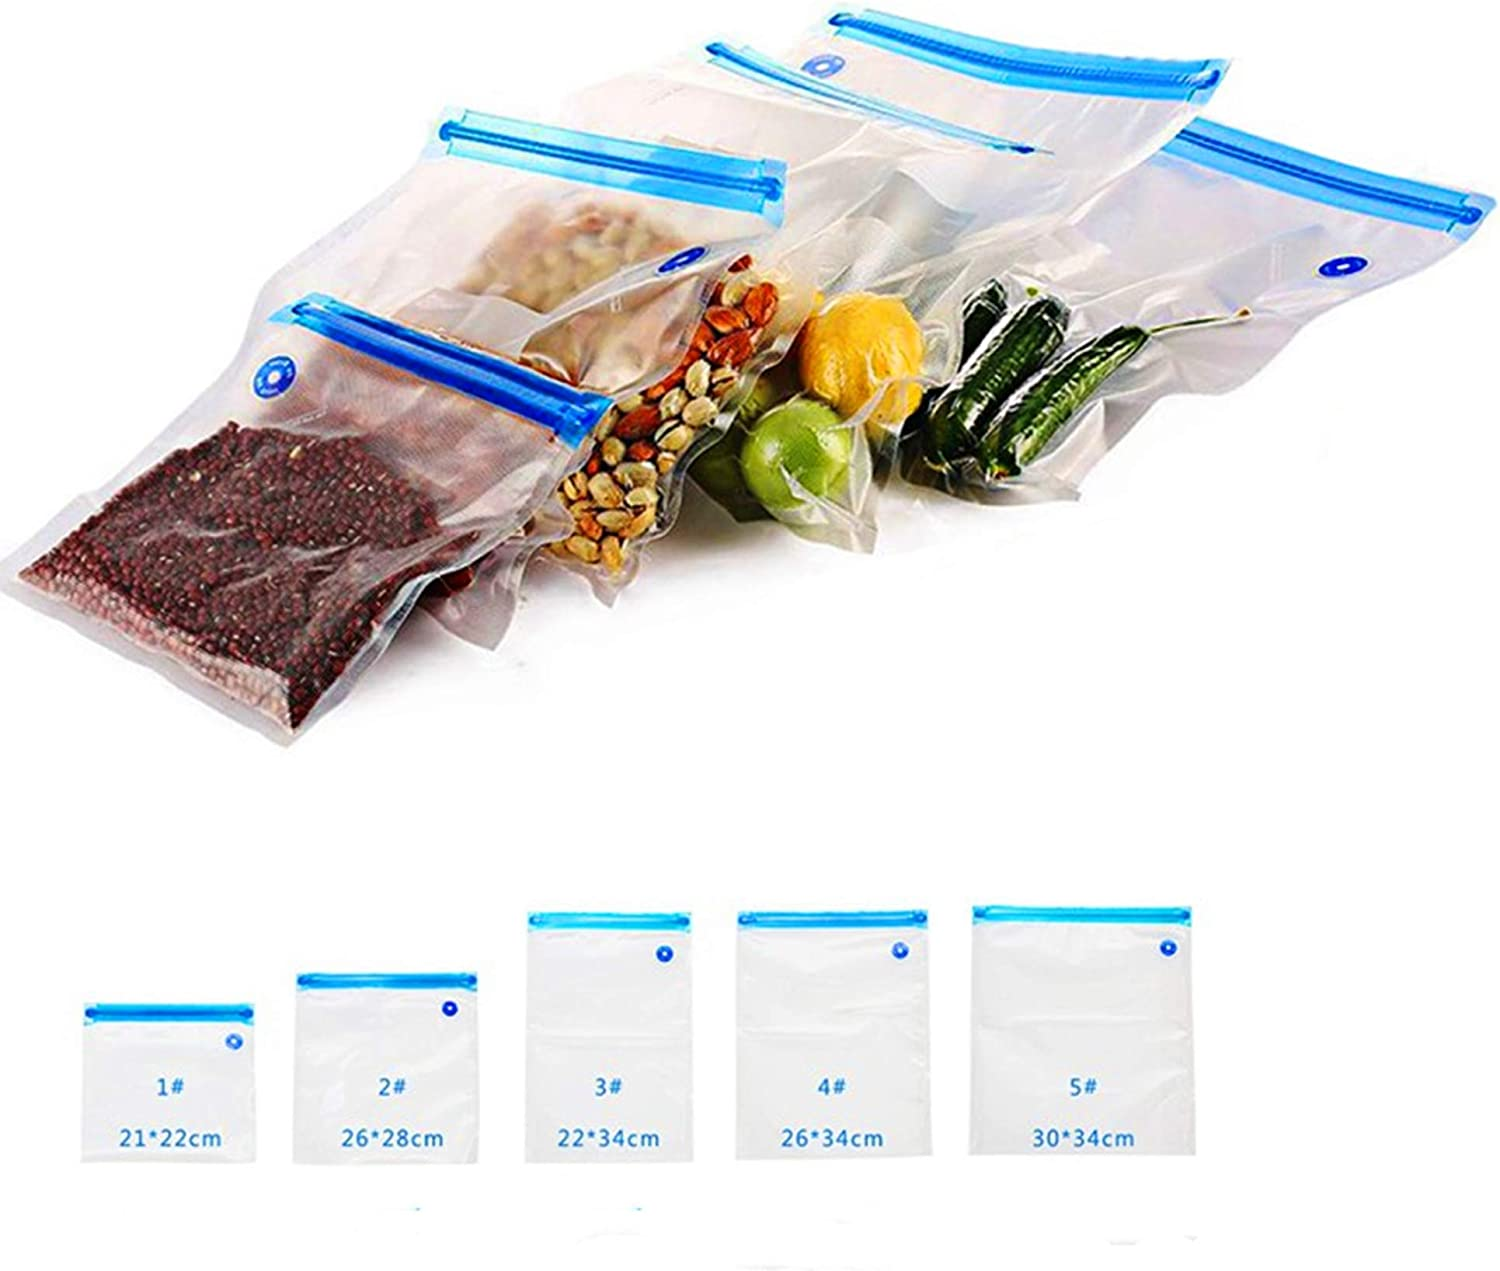 Vacuum Zipper Bags 25PCS, Xaoyaya Vacuum Food Sealer Bags Food Storage Reusable Bags With Double-Layer Zippers Designed Increase The Freshness Time Of Food By Five Times…